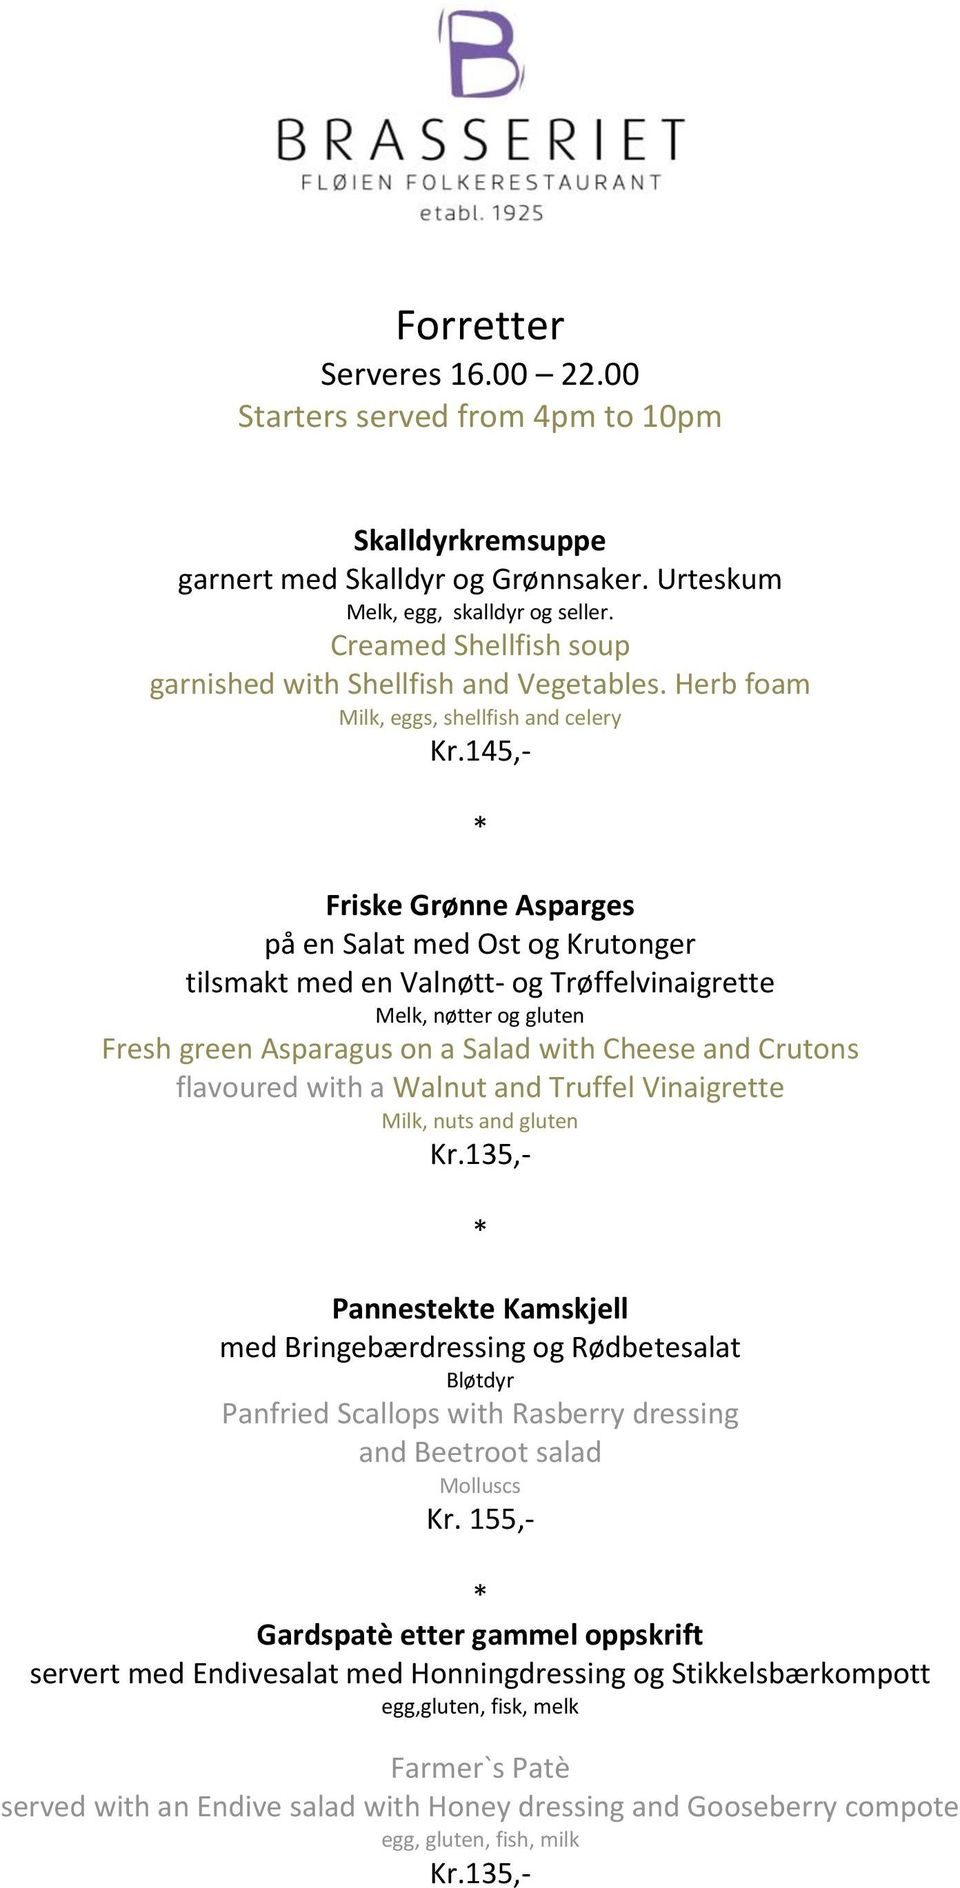 145,- Friske Grønne Asparges på en Salat med Ost og Krutonger tilsmakt med en Valnøtt- og Trøffelvinaigrette Melk, nøtter og gluten Fresh green Asparagus on a Salad with Cheese and Crutons flavoured